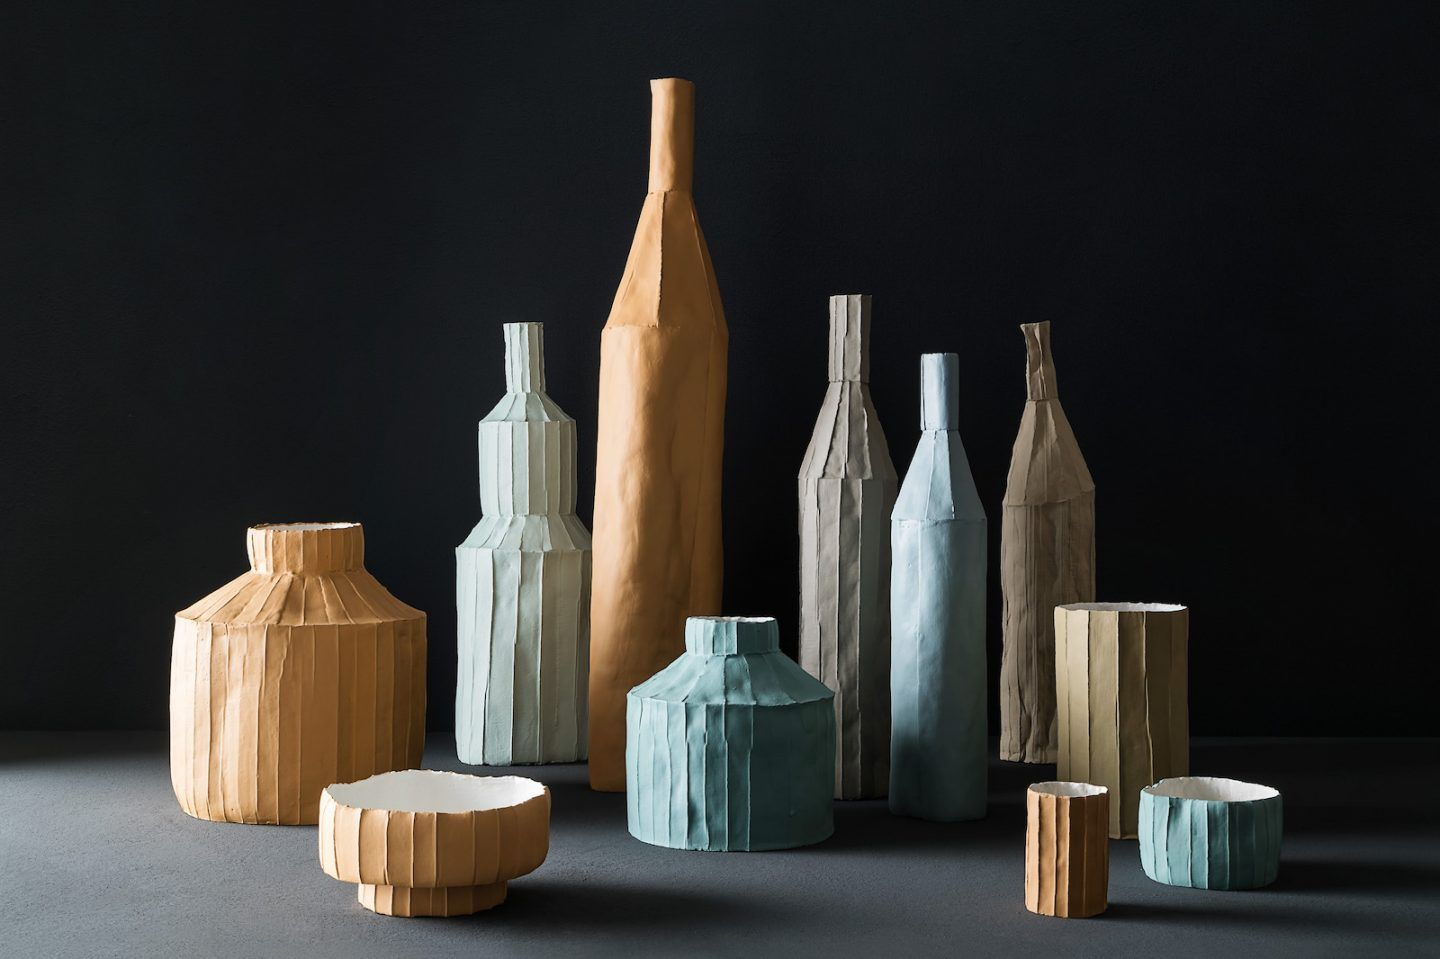 Uniquely Textured Ceramic Sculptures Made From Paper Clay Ignant